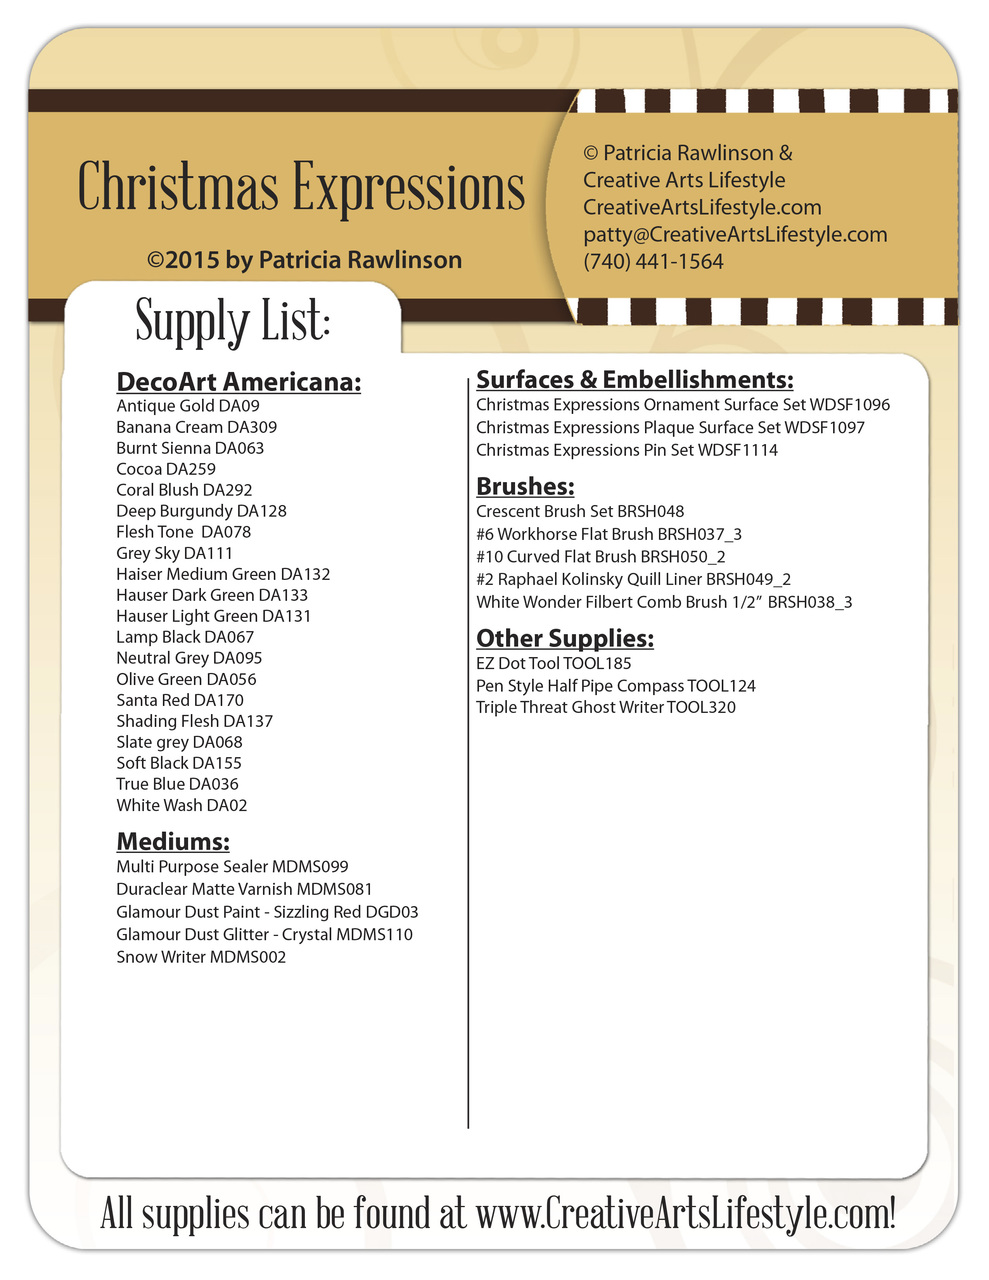 Christmas Expressions - E-Packet - Patricia Rawlinson